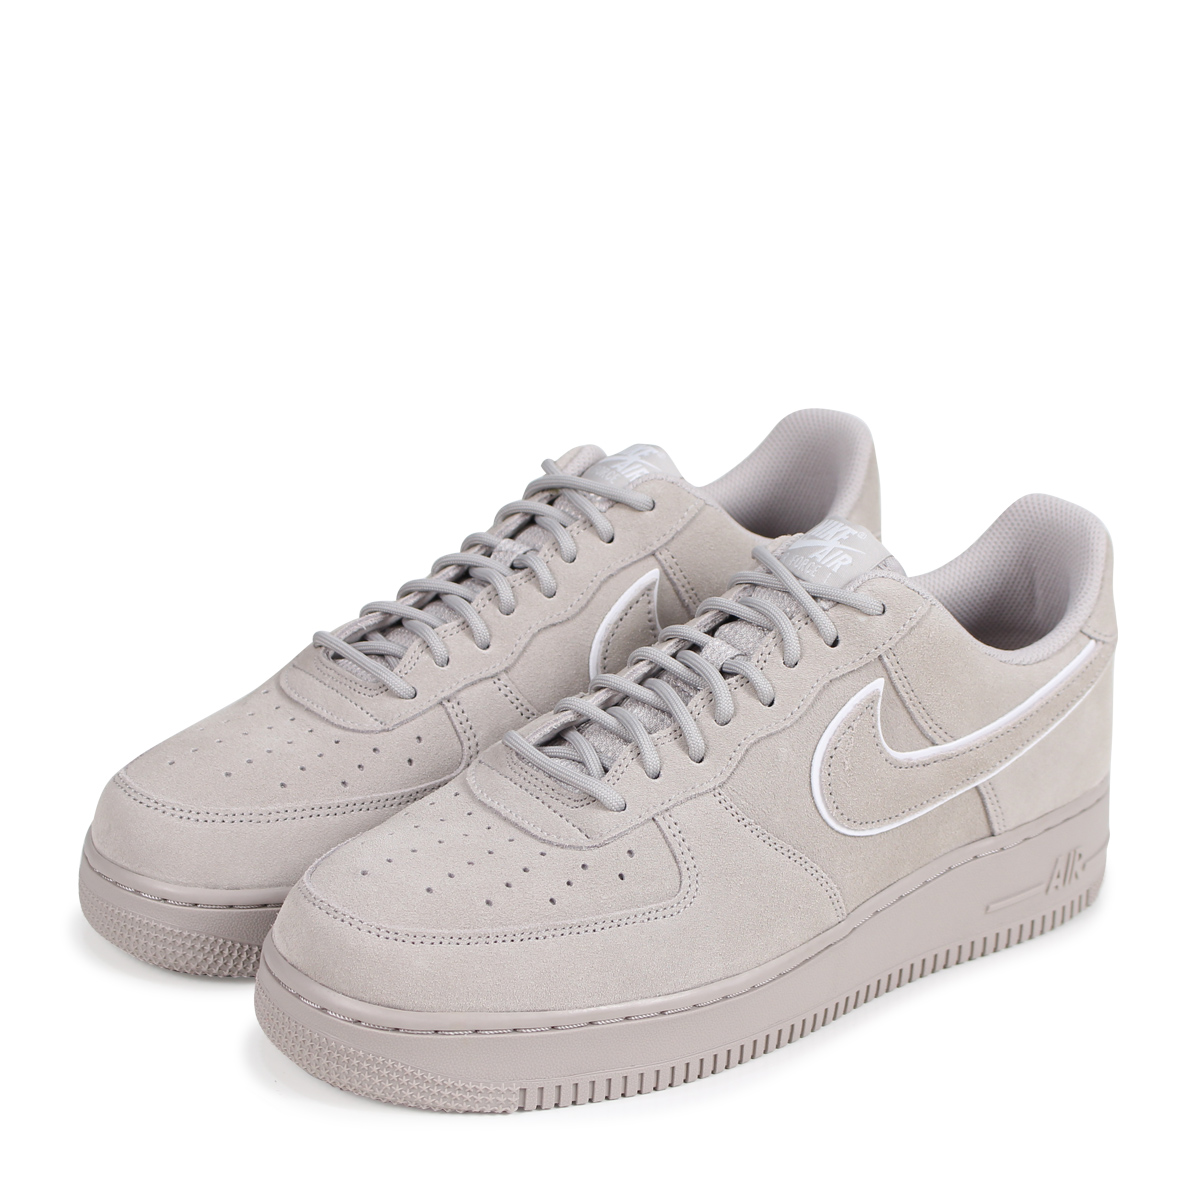 f37593b9265 ALLSPORTS  NIKE AIR FORCE 1 SUEDE Nike air force 1 07 LV8 sneakers ...